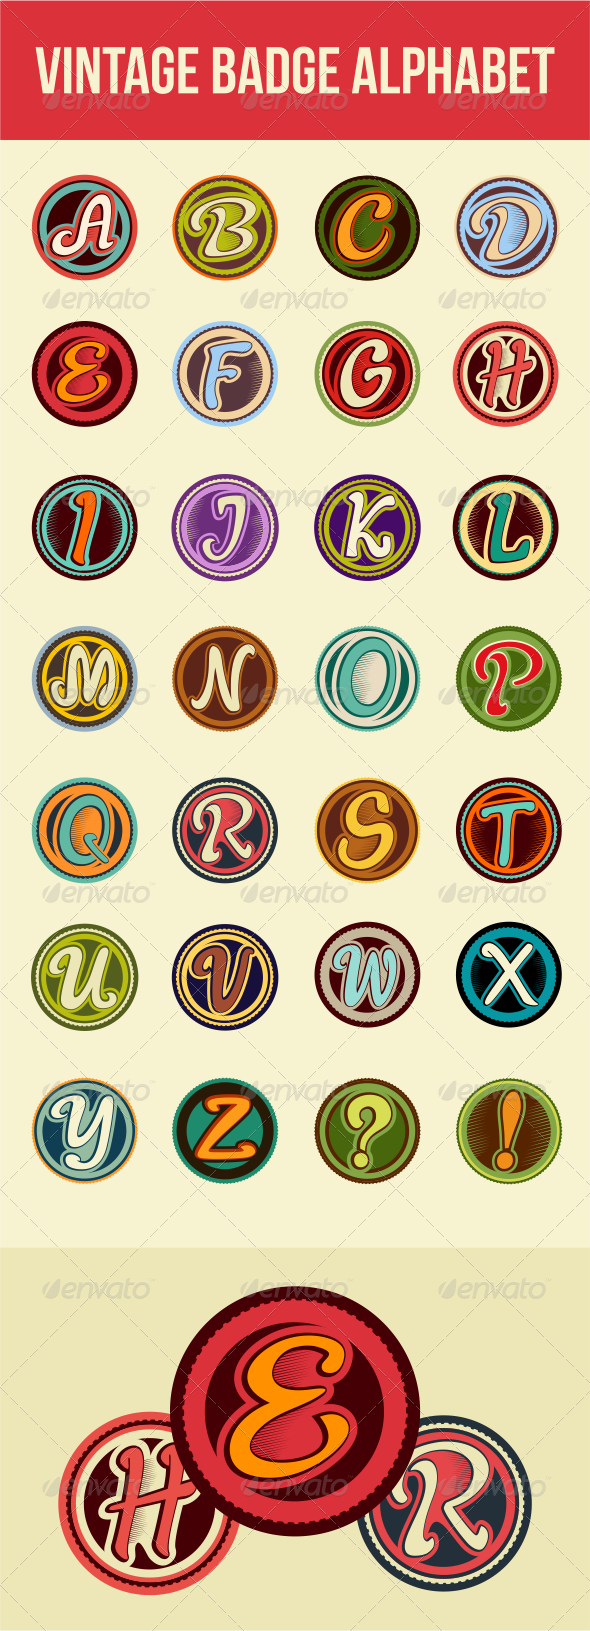 Vintage Badge Alphabet  - Decorative Symbols Decorative